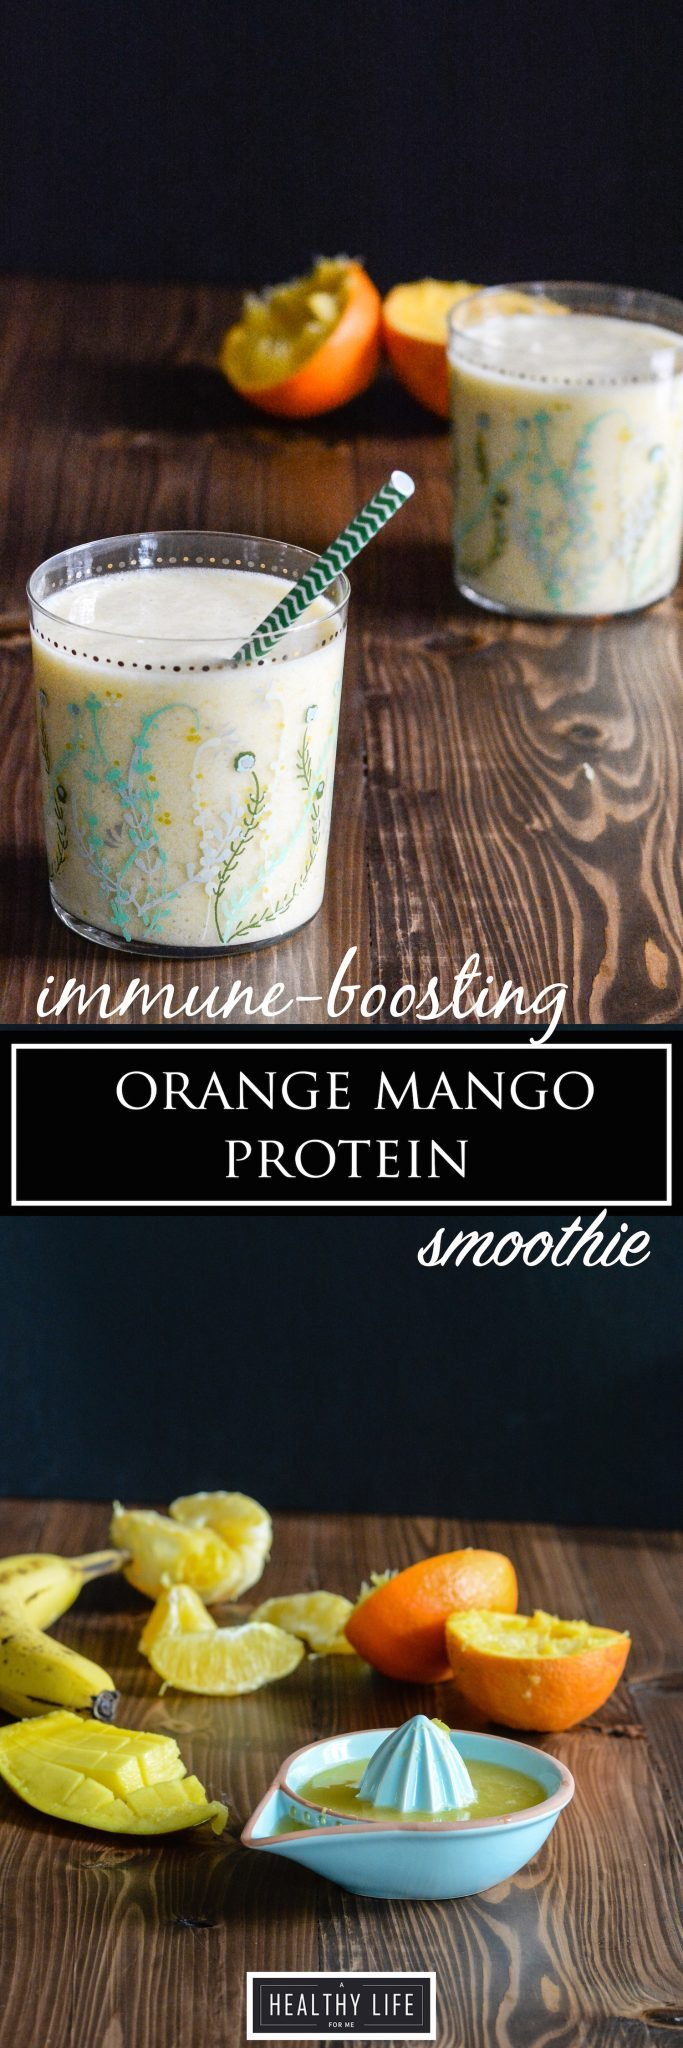 Orange Mango Protein Smoothie Recipe | ahealthylifeforme.com